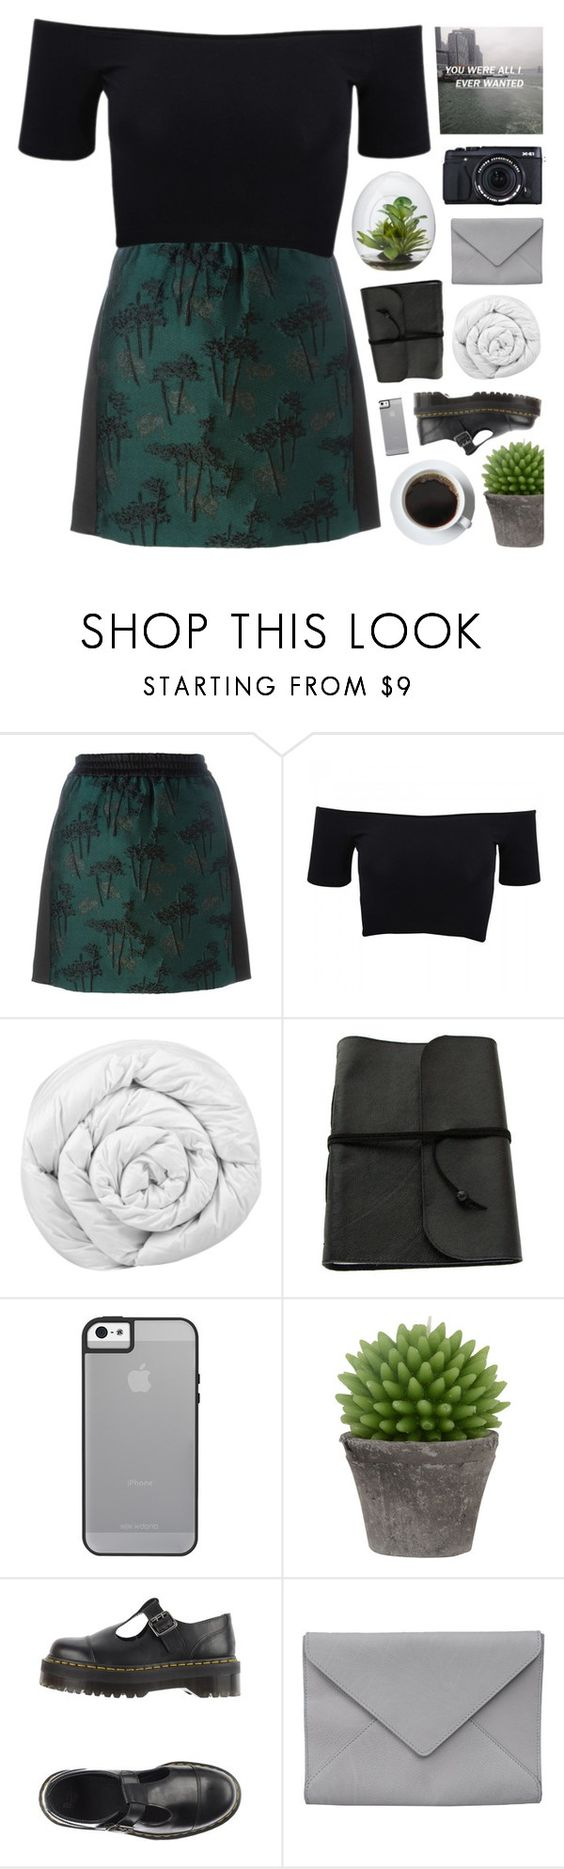 """""""MACEY WAS HERE"""" by elainesabine ❤ liked on Polyvore featuring Kenzo, American Apparel, Brinkhaus, Broste Copenhagen, Dr. Martens, Ann Demeulemeester, DestinyHasBeenSummoned and melsunicorns"""